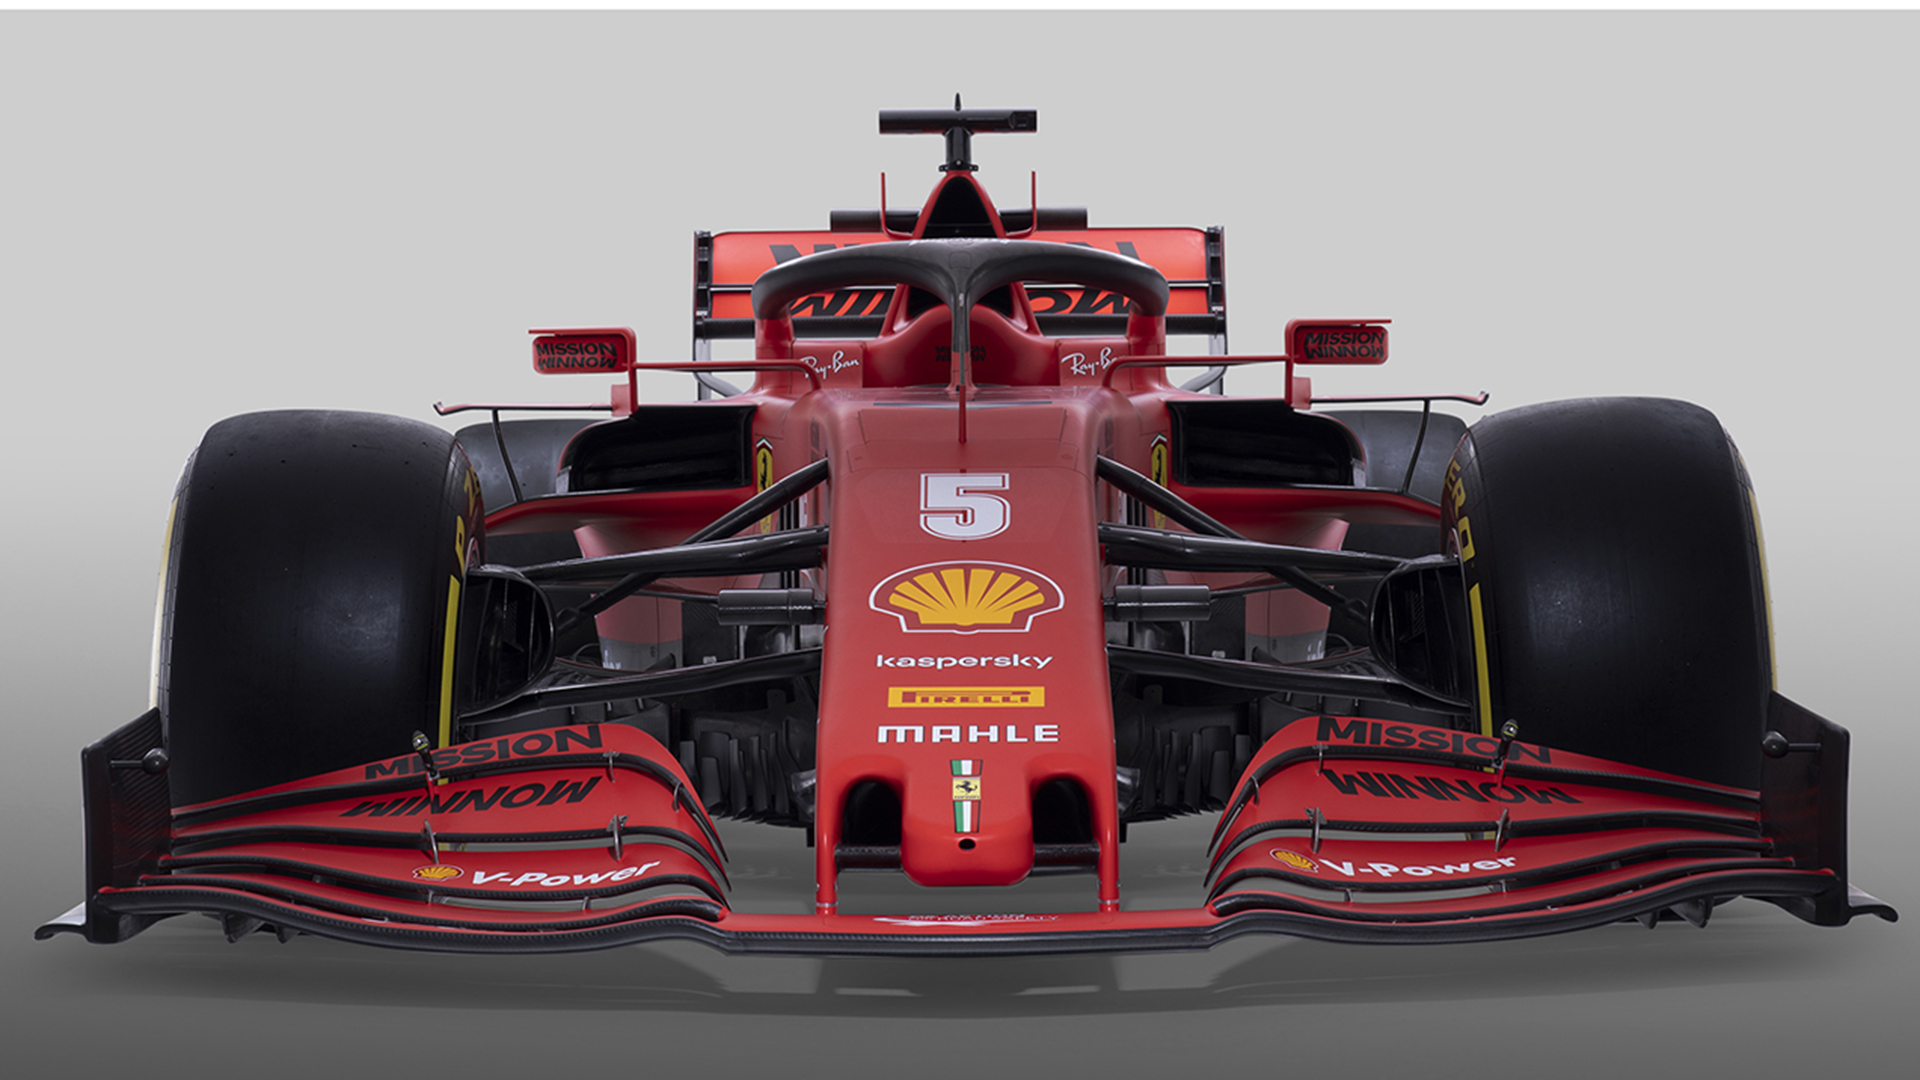 Rapid Reaction Our First Take Technical Analysis Of Ferrari S 2020 Sf1000 F1 Car Formula 1